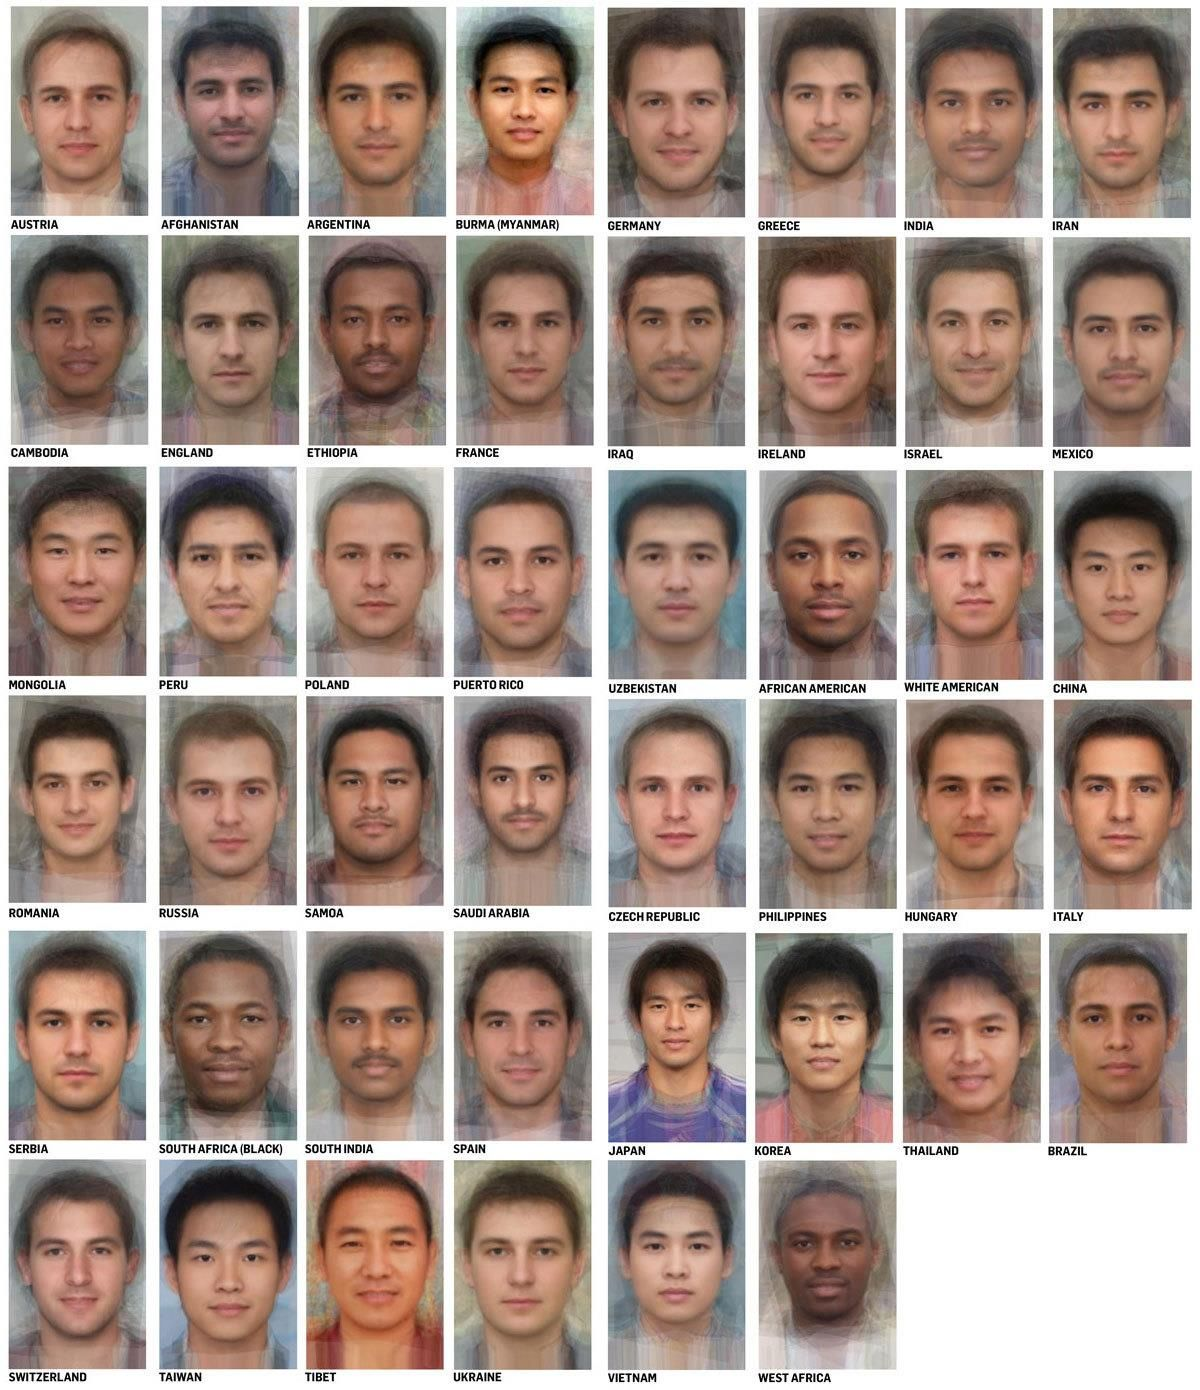 Average male faces from around the World.